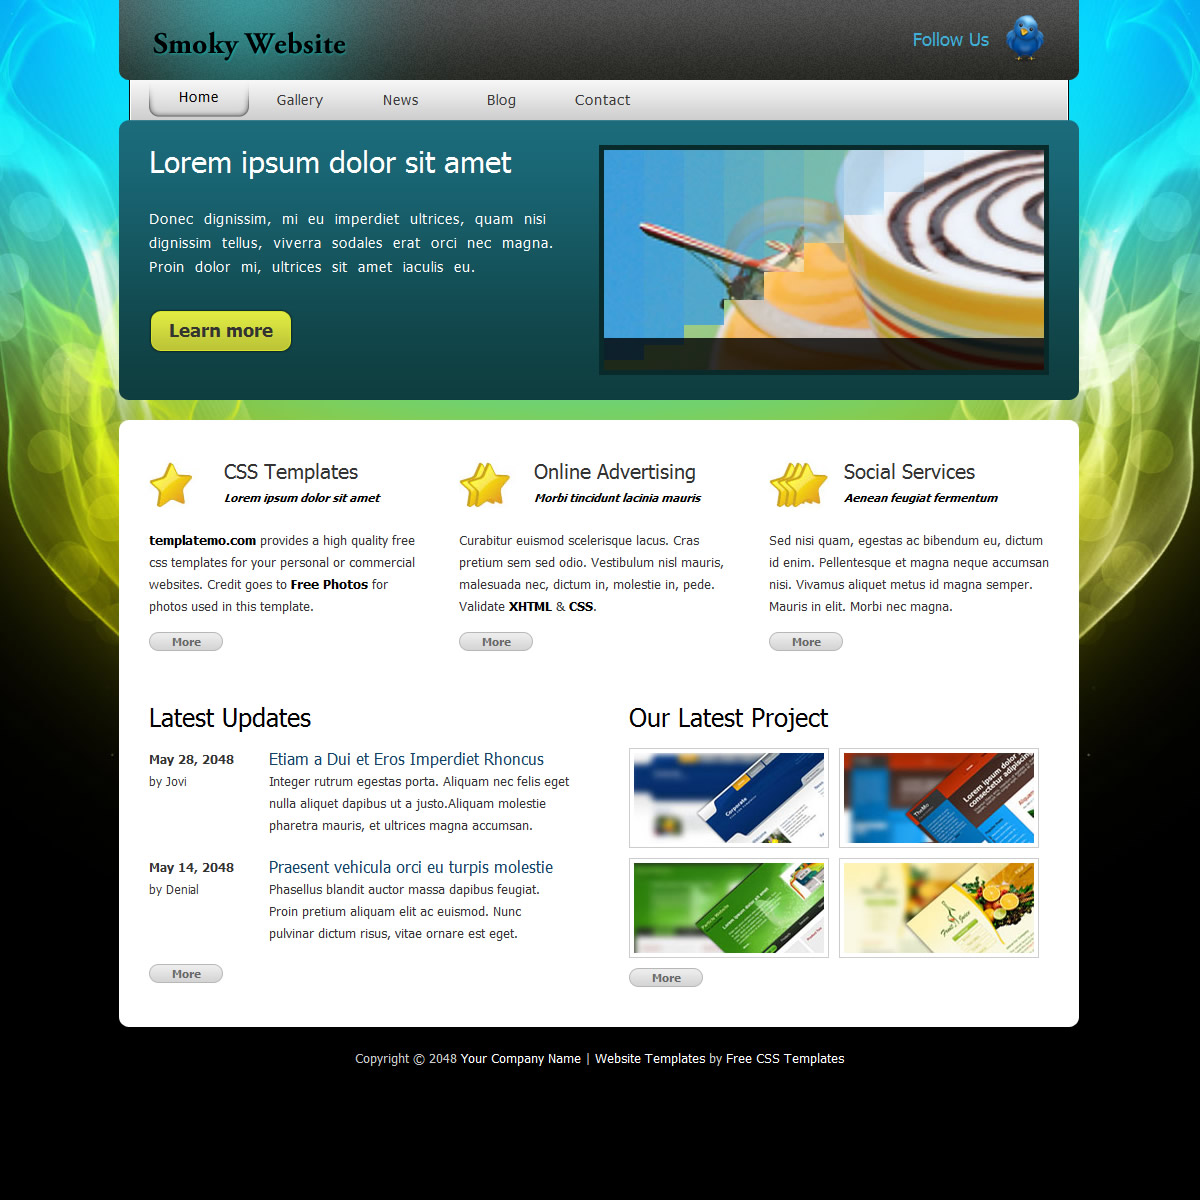 3-column Website Templates by templatemo